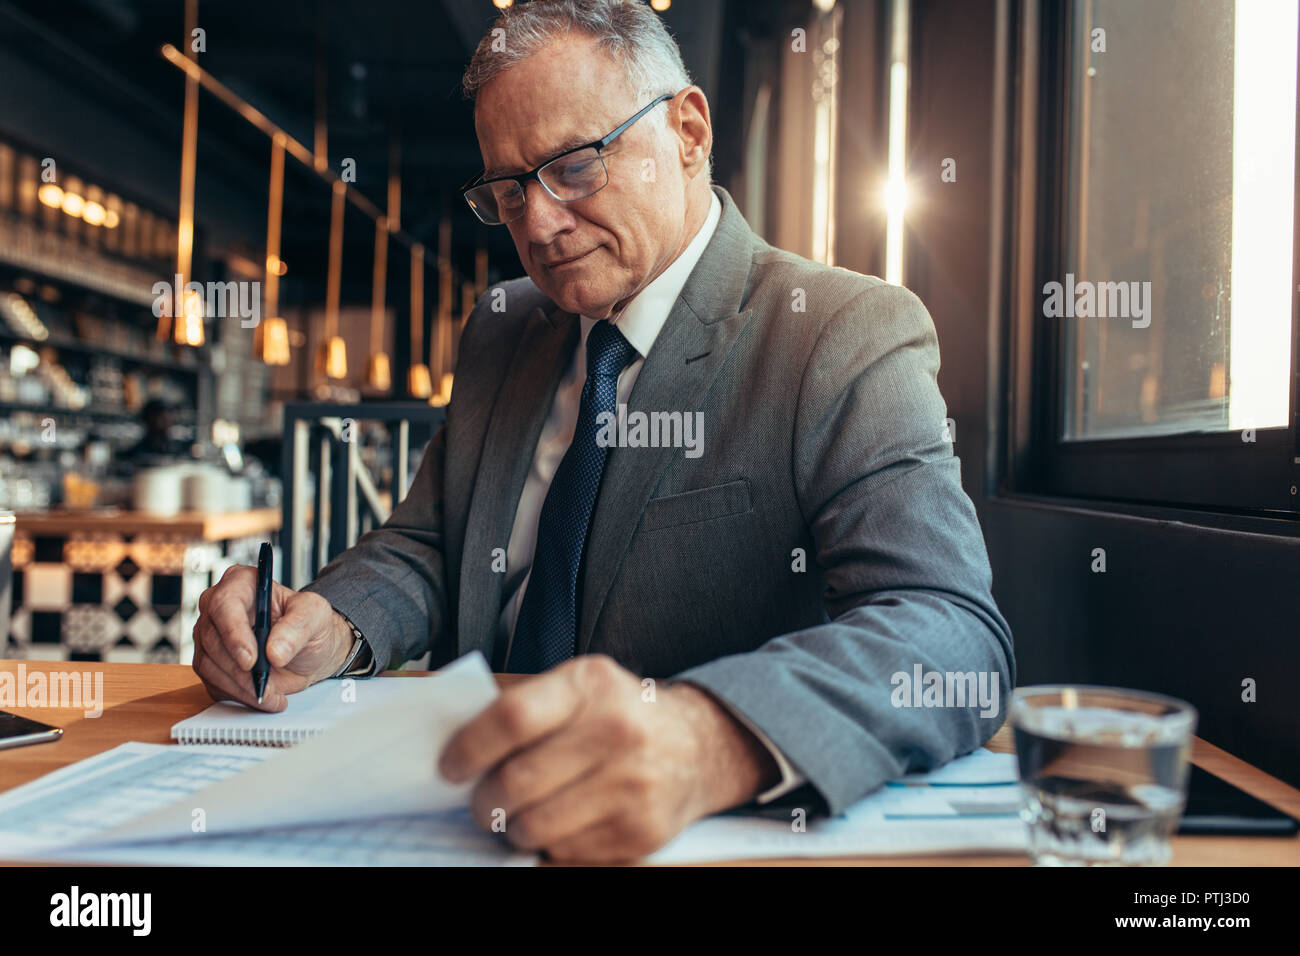 Senior businessman sitting at cafe table reading a document and making notes. Mature man in suit working on new project budget. - Stock Image